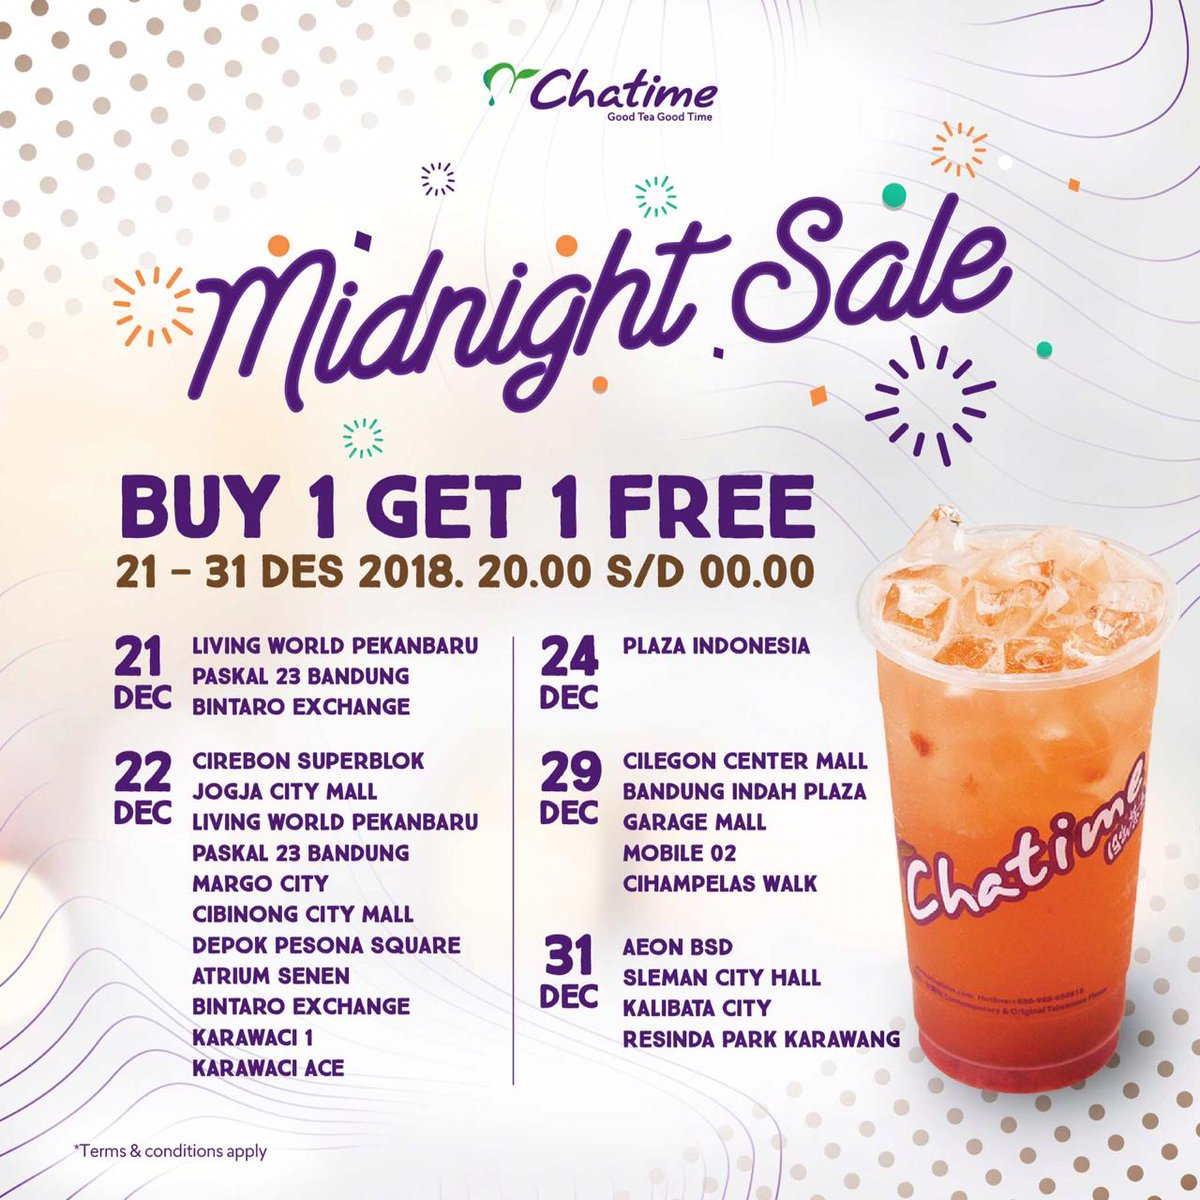 #Chatime - Promo Buy 1 Get 1 Fee Di Midnight Sale (s.d 31 Des 2018)